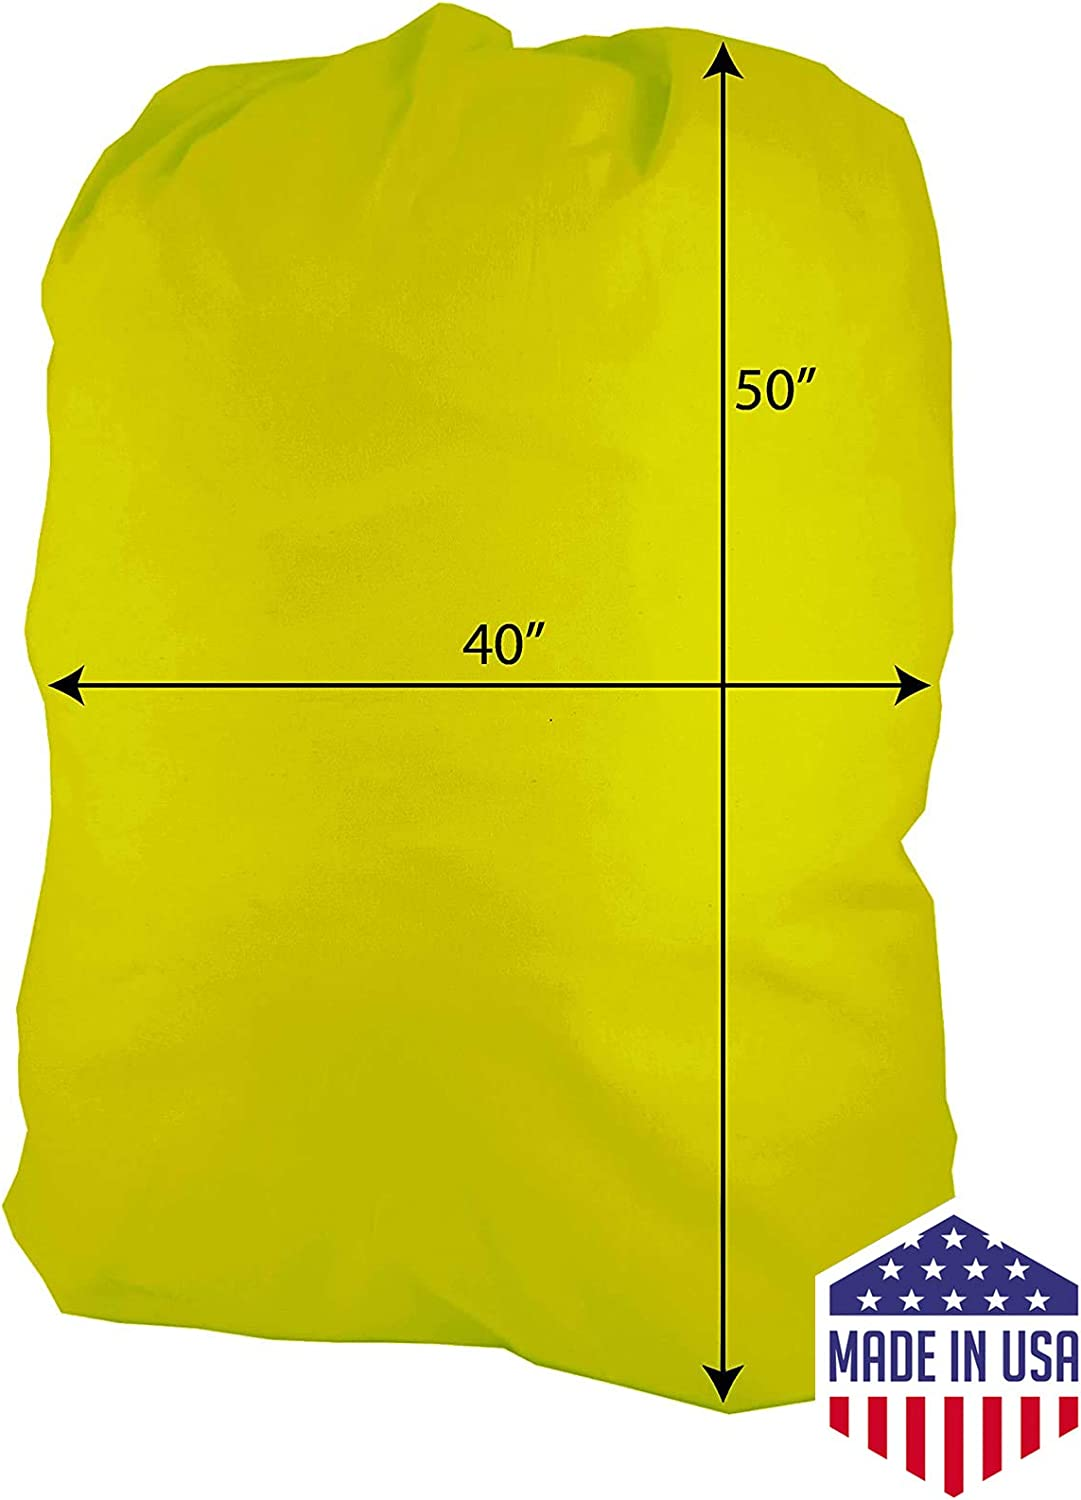 """Huge Heavy Duty Nylon Laundry Storage Bags with Drawstring, Durable, Machine Washable 40' x 50"""" Choose The Color (Yellow)"""